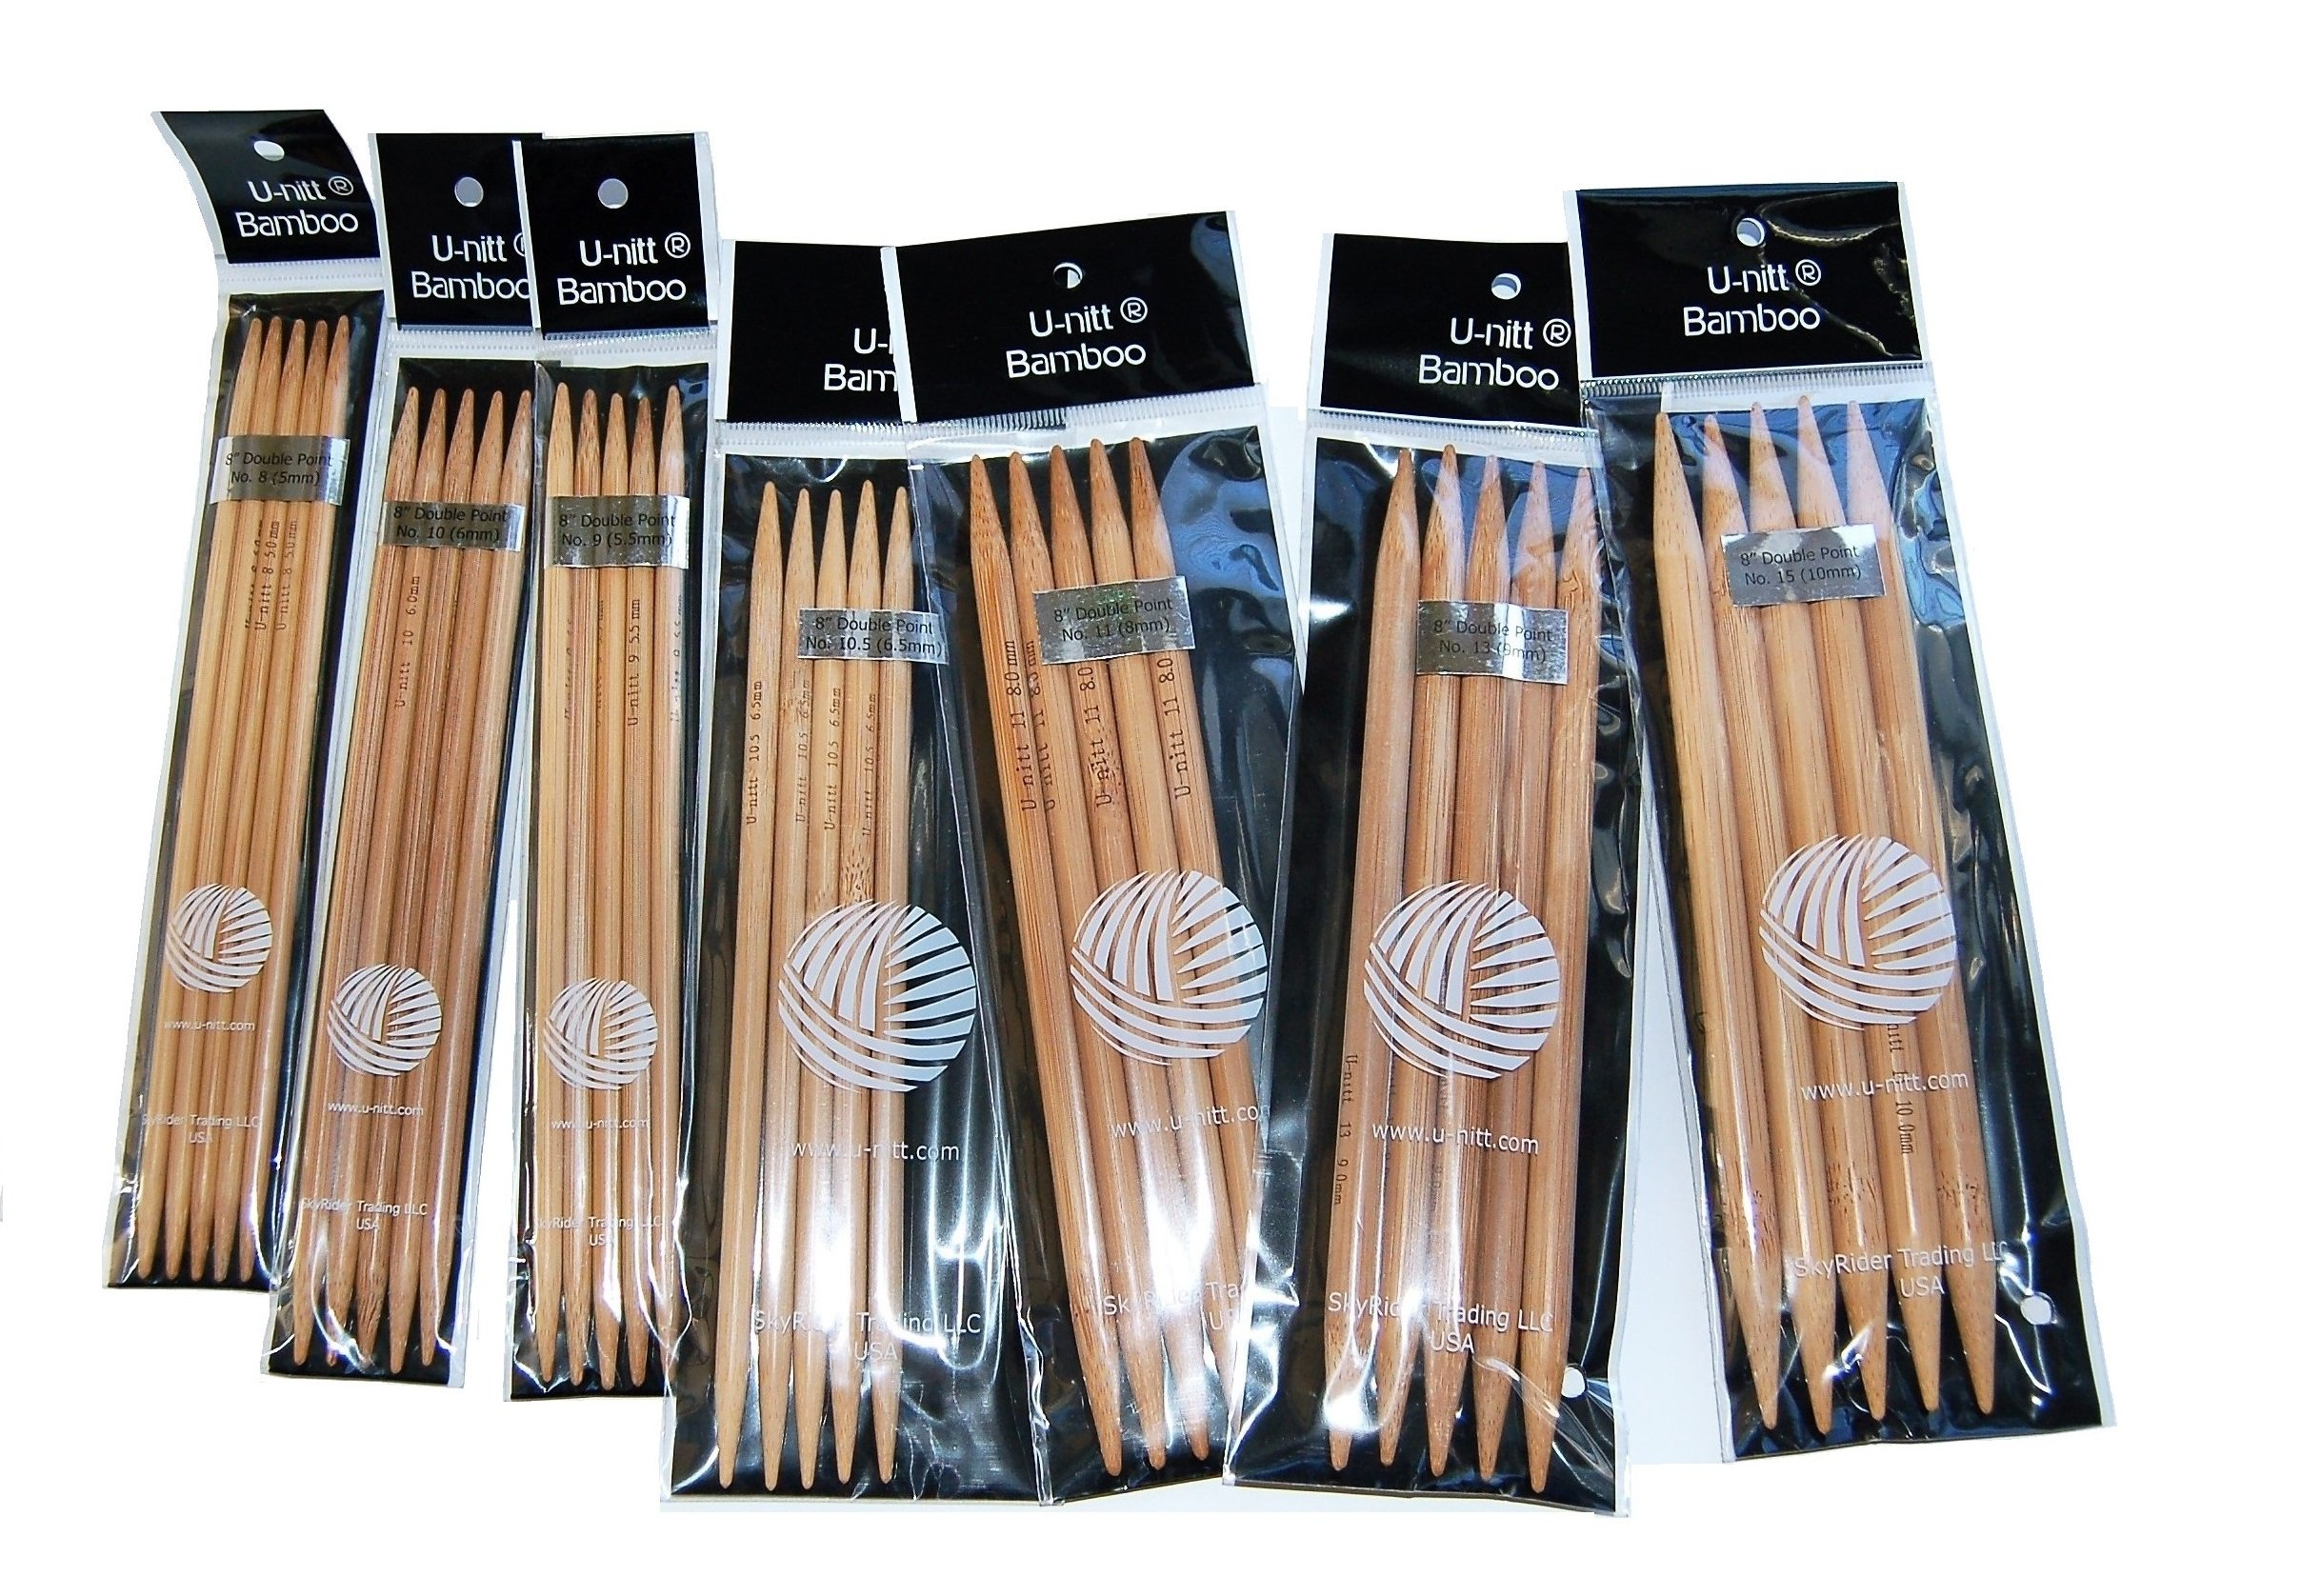 U-nitt Bamboo Knitting Needles Double Point 8'' inch Sz 8, 9, 10, 10.5, 11, 13, 15 : 7-Size Patina